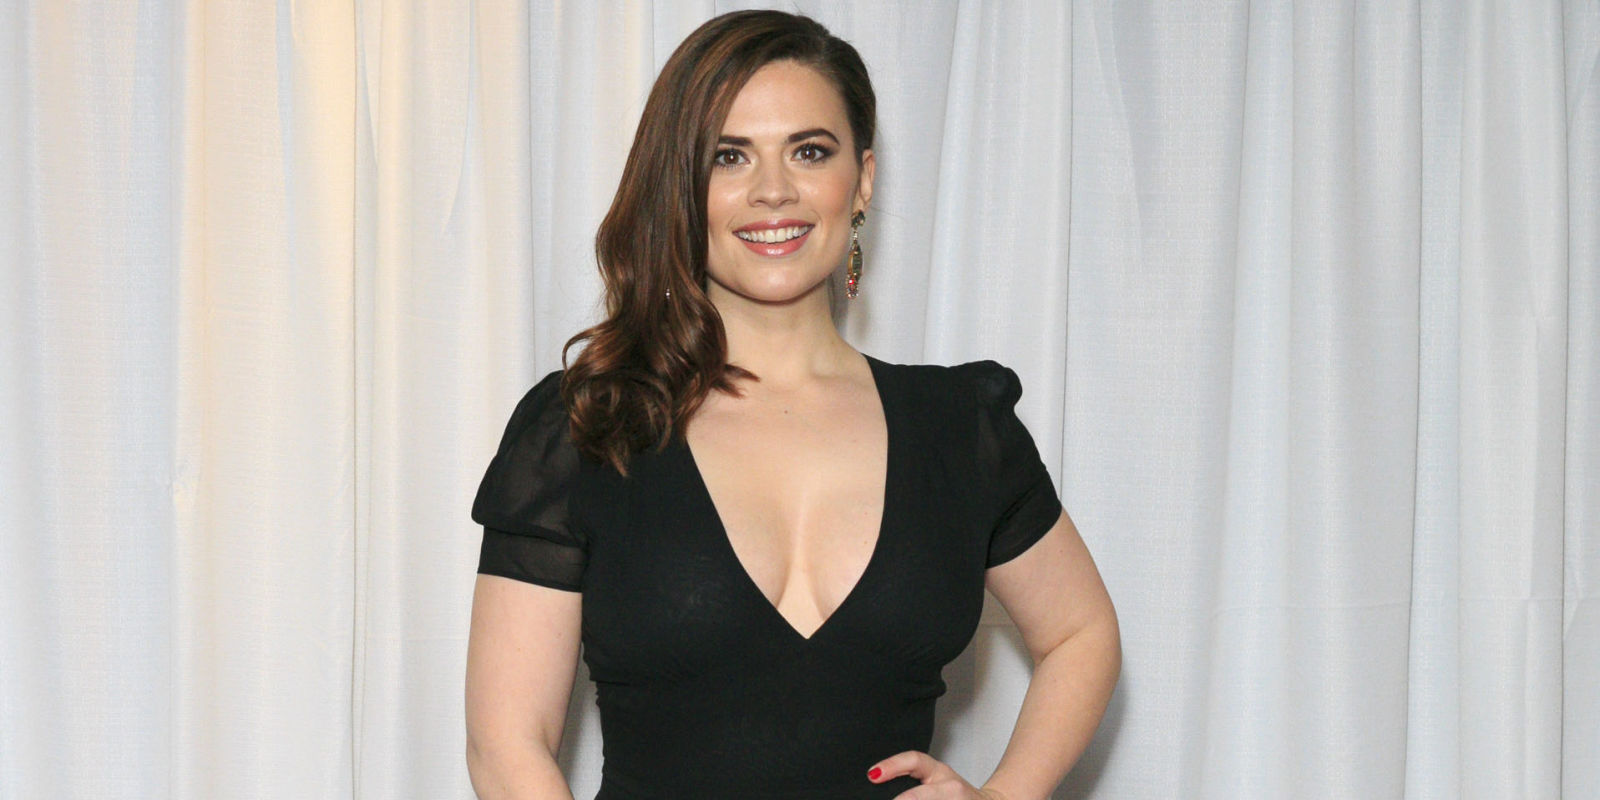 Hayley Atwell posing in a black dress with her hands on her shoulders